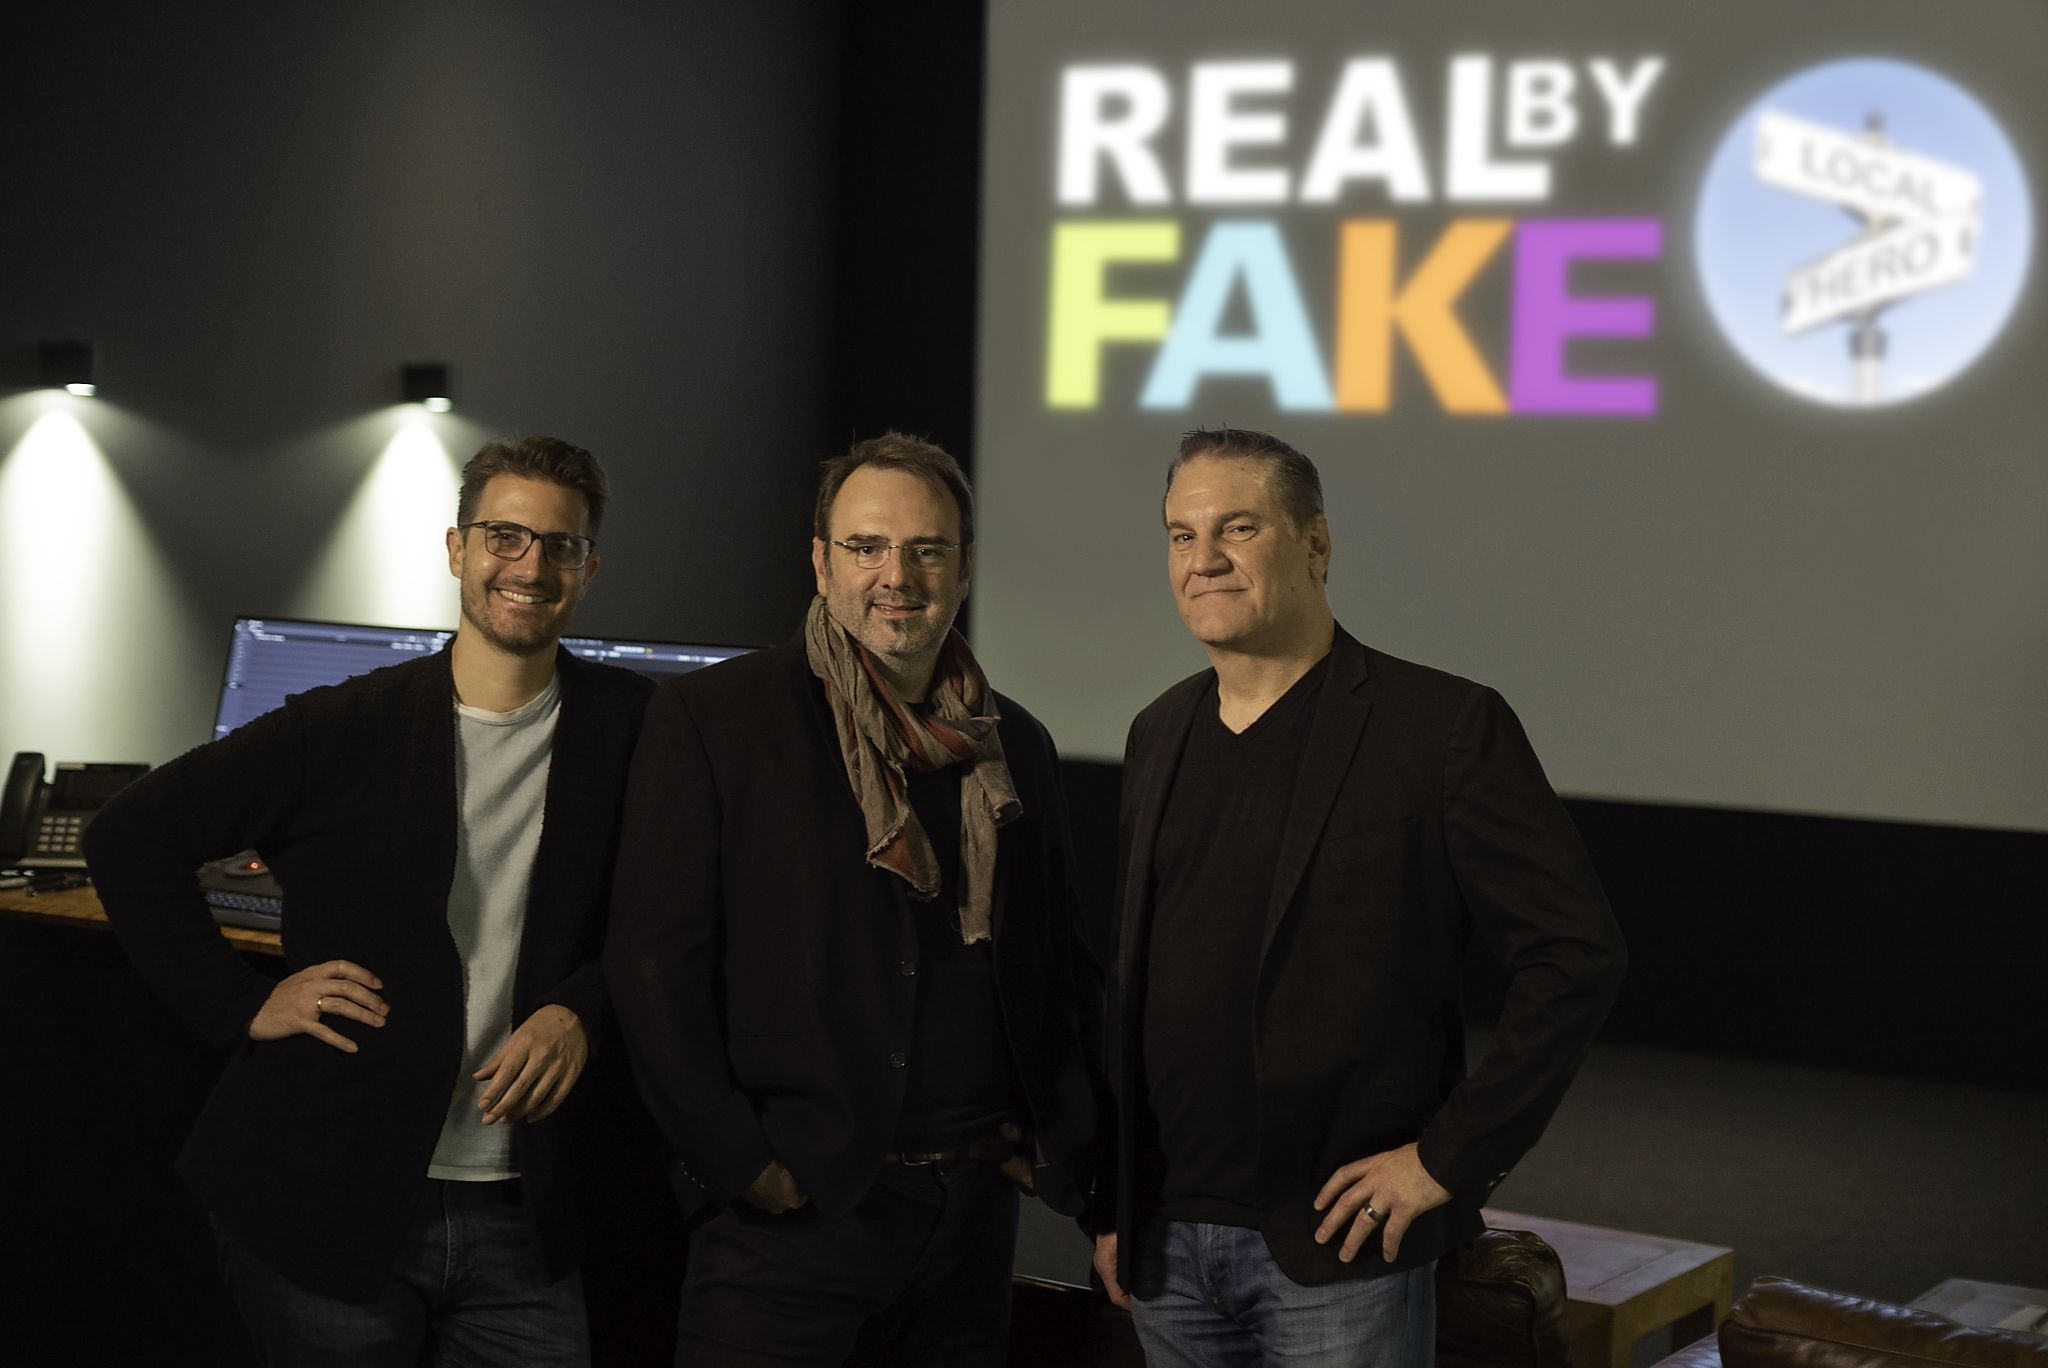 Local Hero founder and Head of Imaging Leandro Marini, Real by Fake President Marc Côté and Local Hero CEO Steve Bannerman